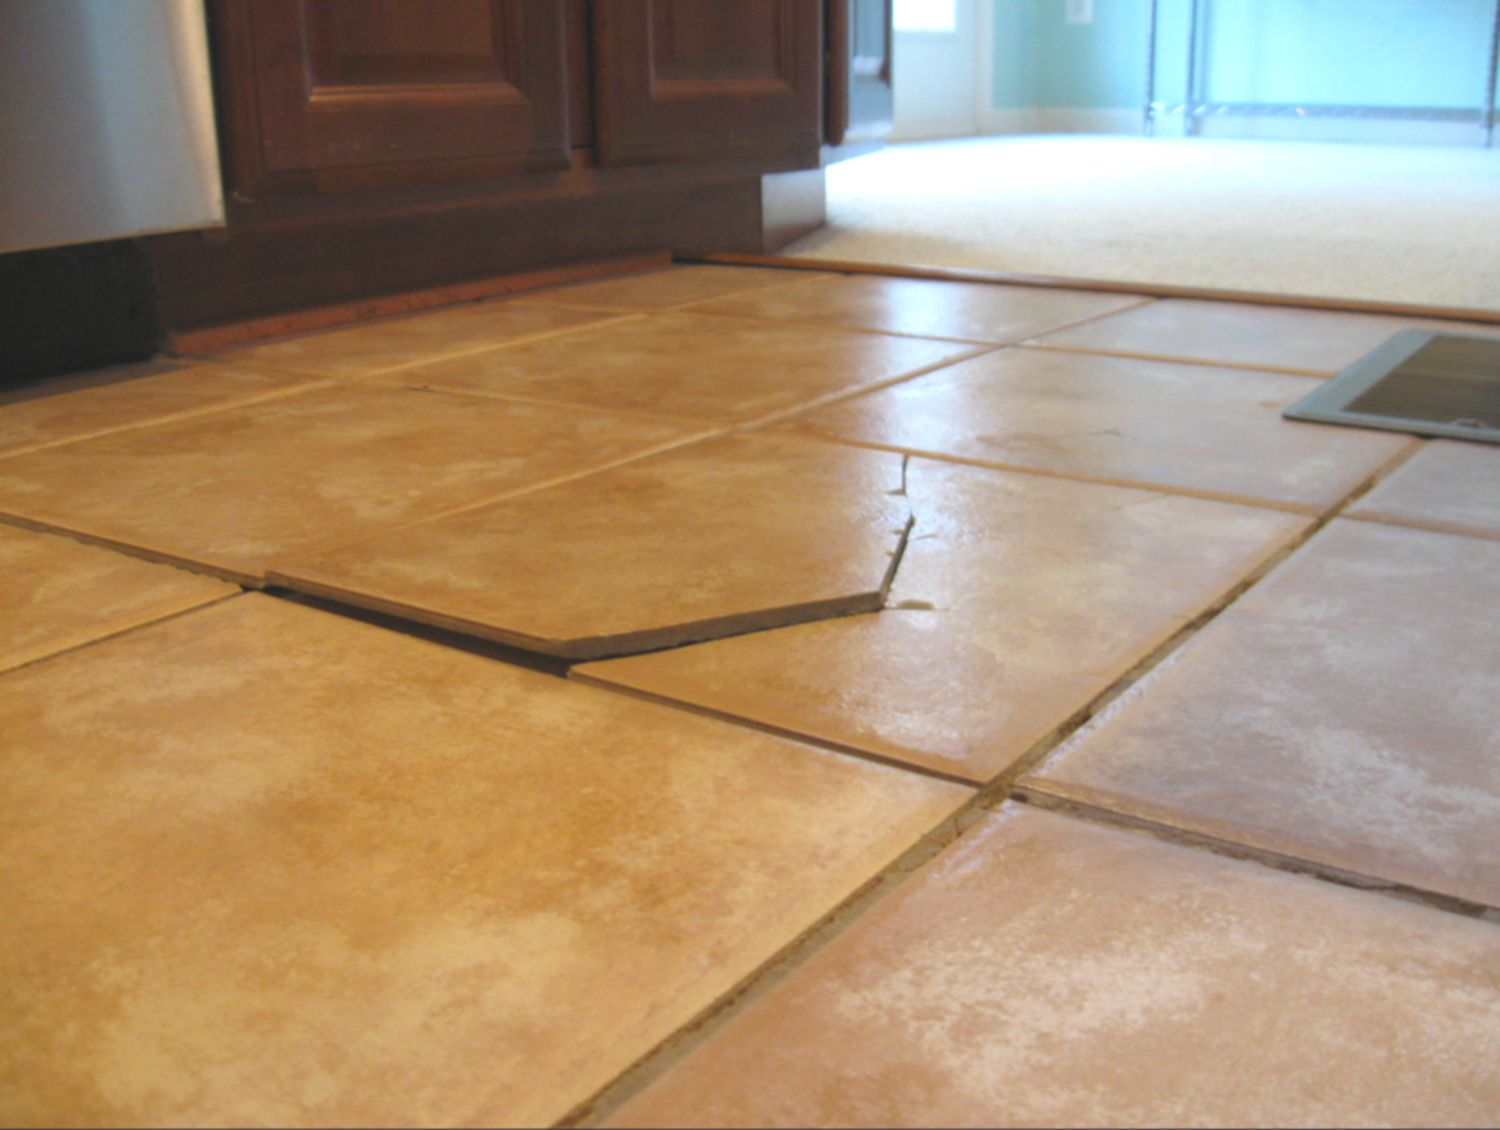 Reasons For Cracked Tile On Floors And Walls - Best thinset for large porcelain tile